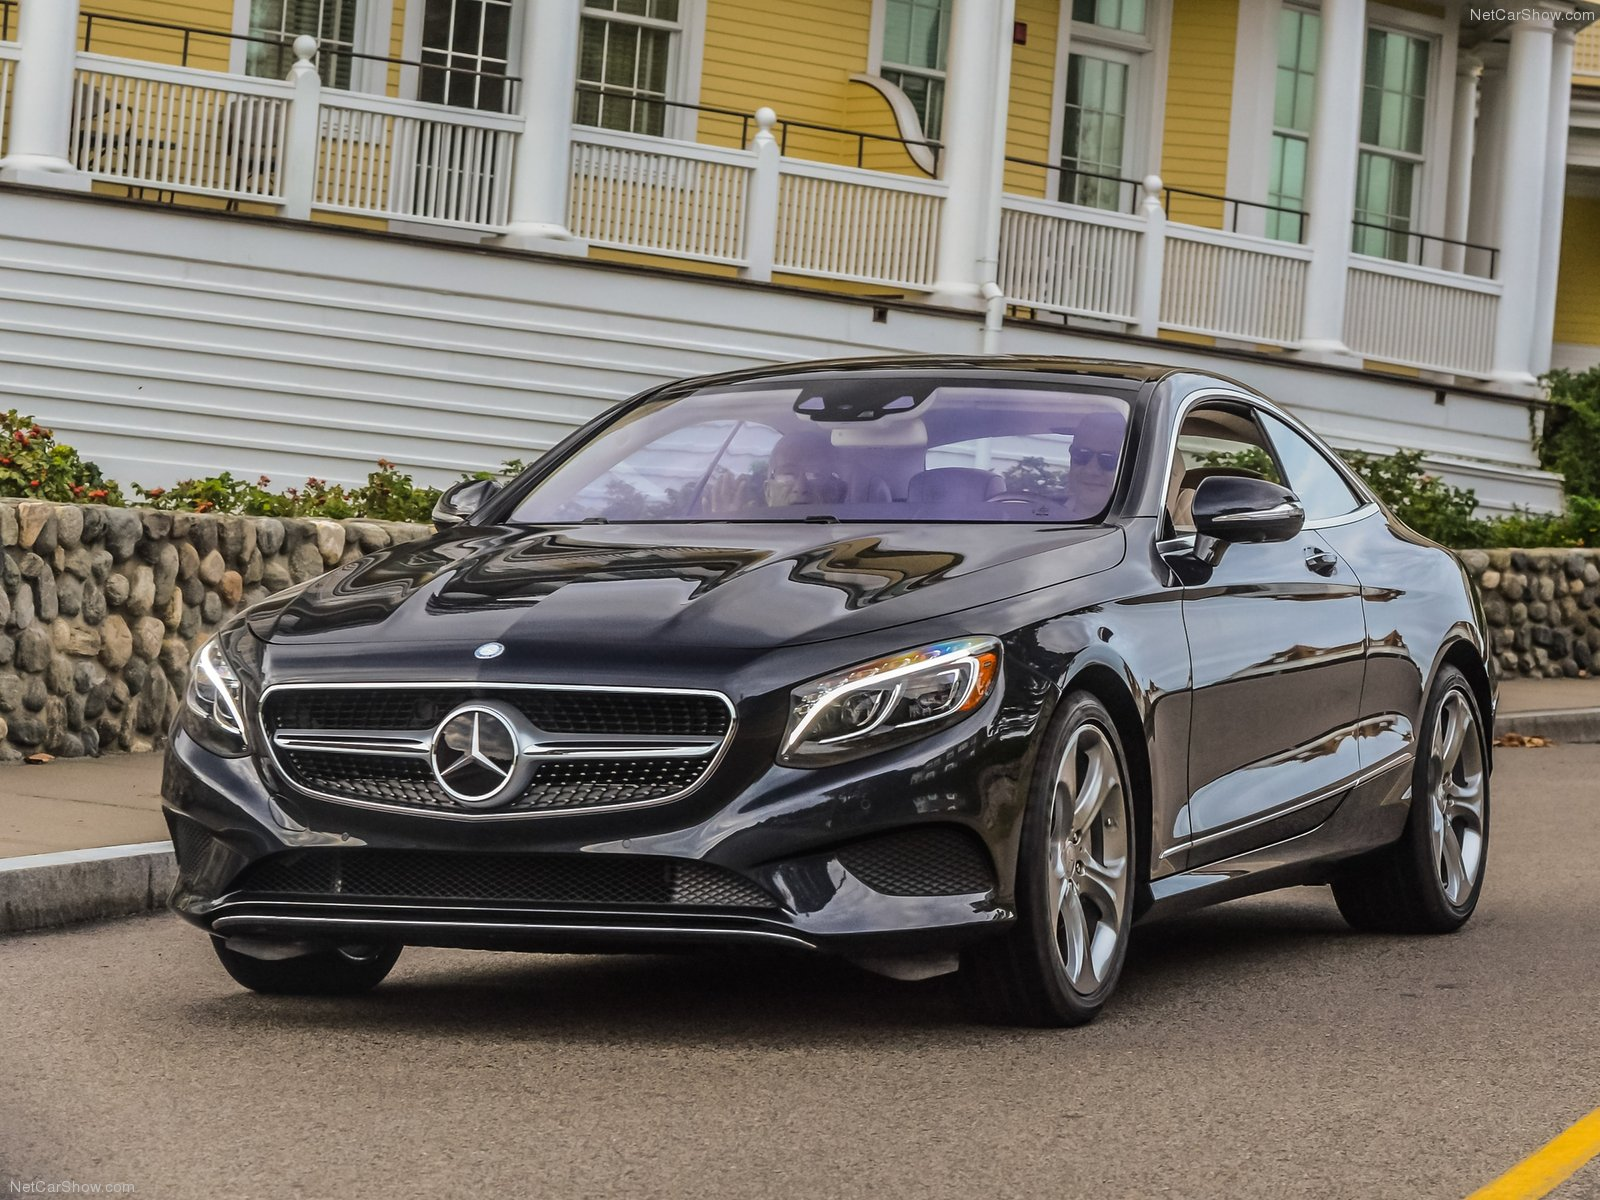 Mercedes-Benz S63 AMG photo 130954